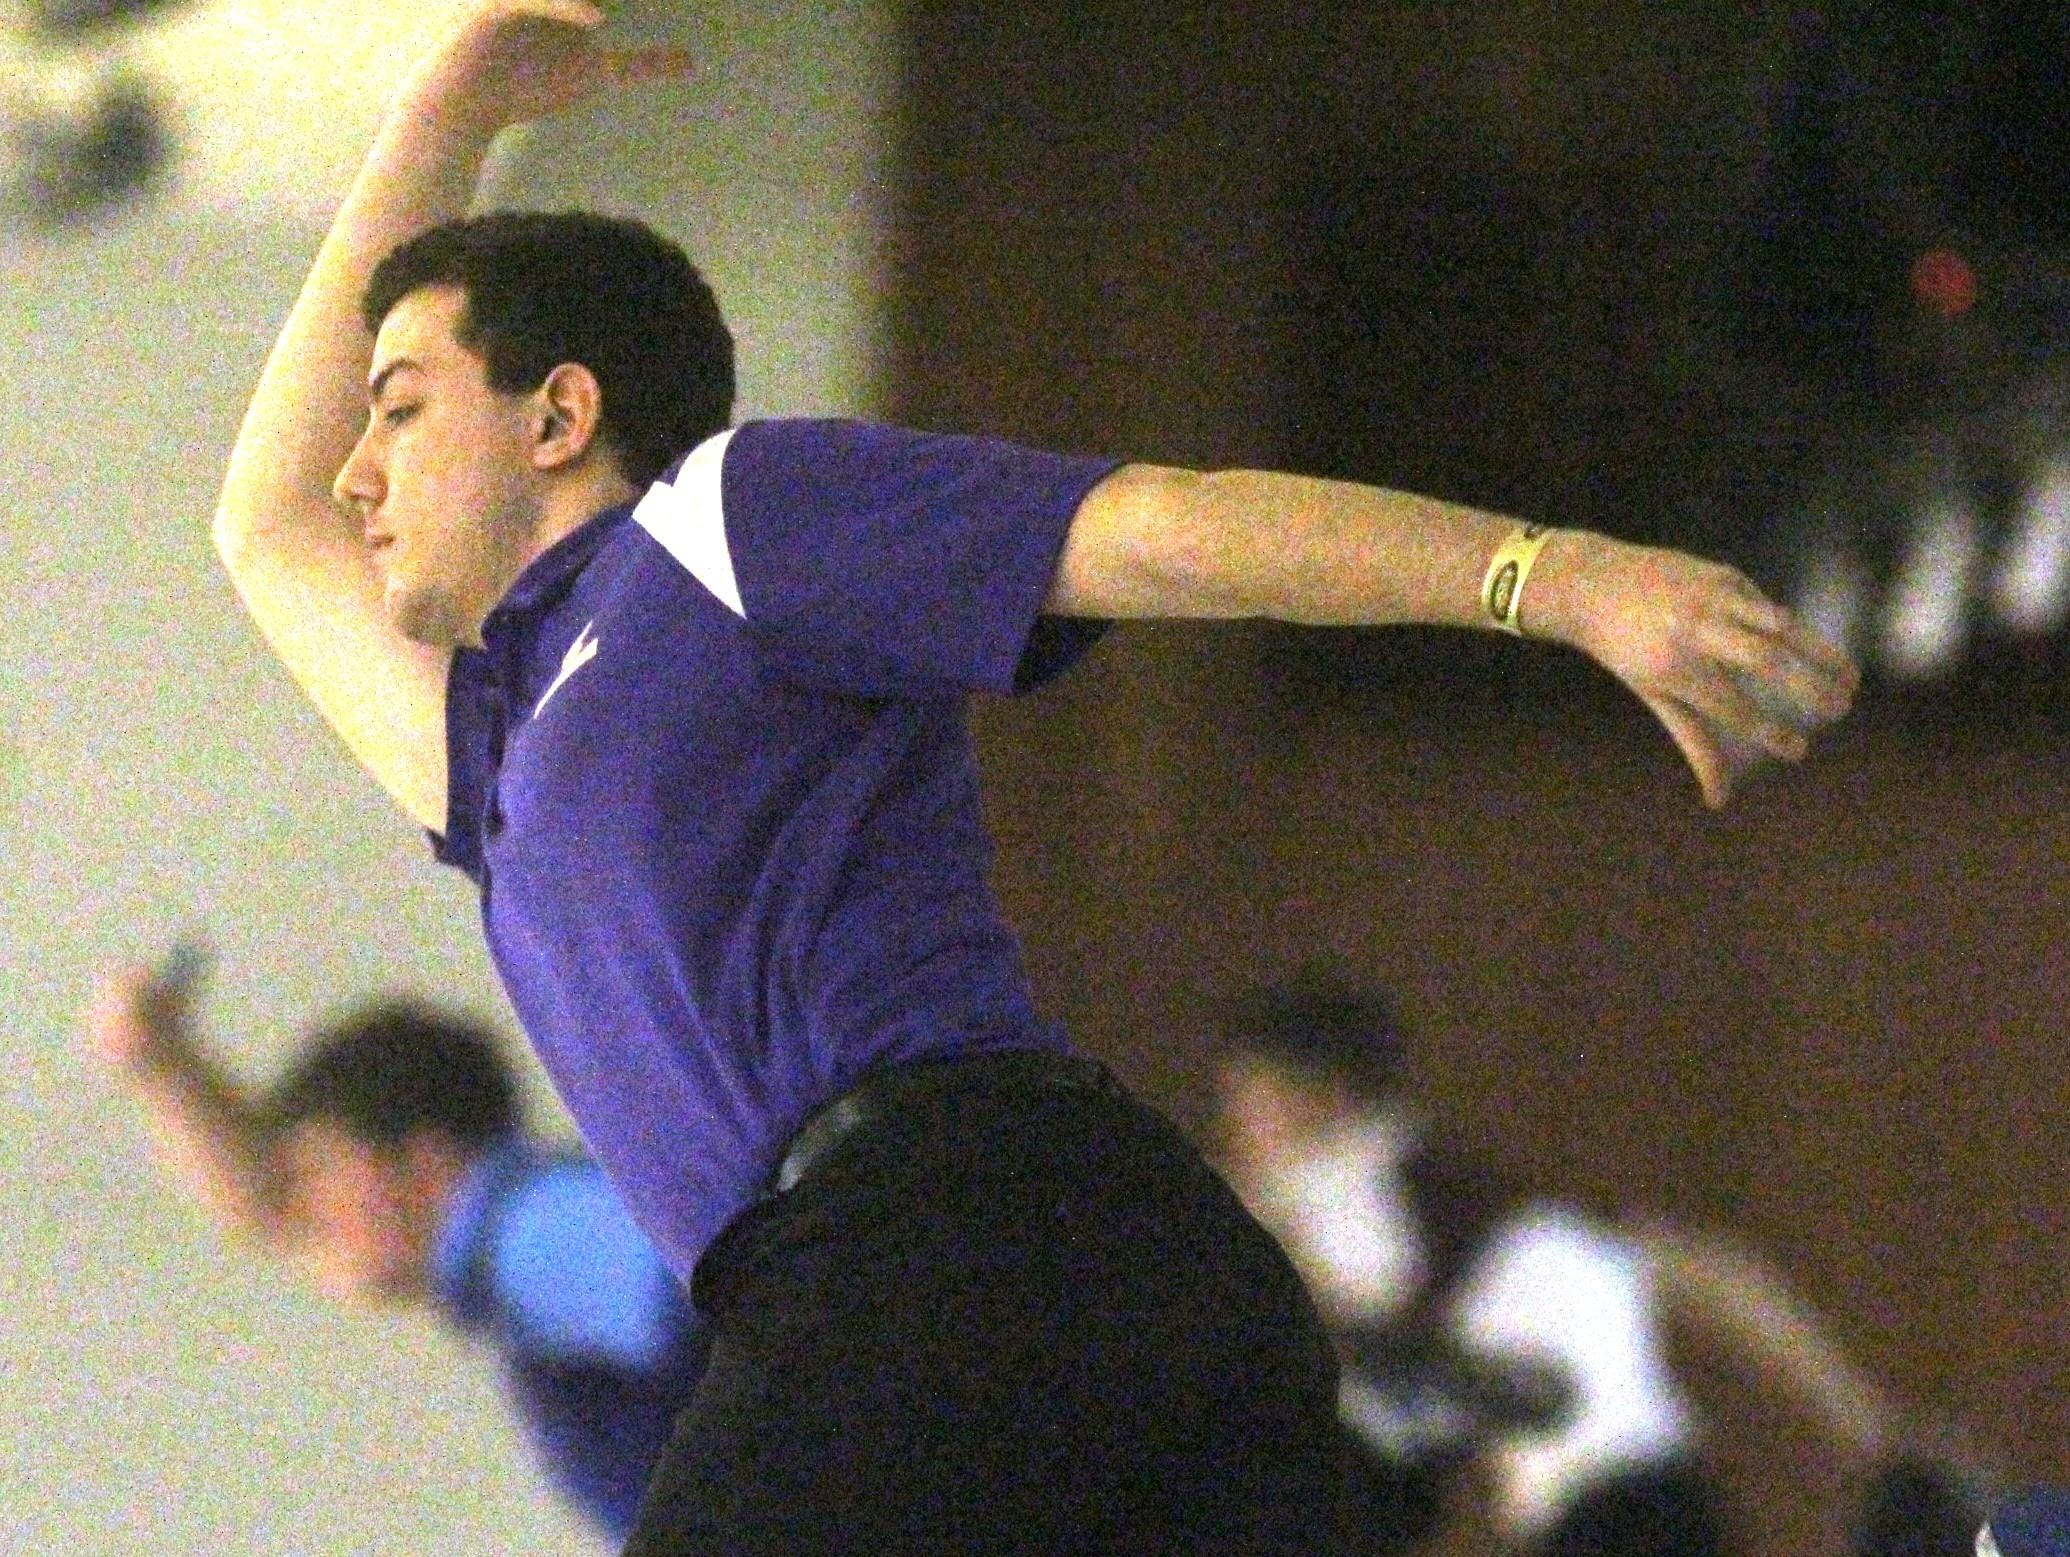 The Campbell County bowling team features senior Jake Barton, who was seventh at last season's regional tournament.